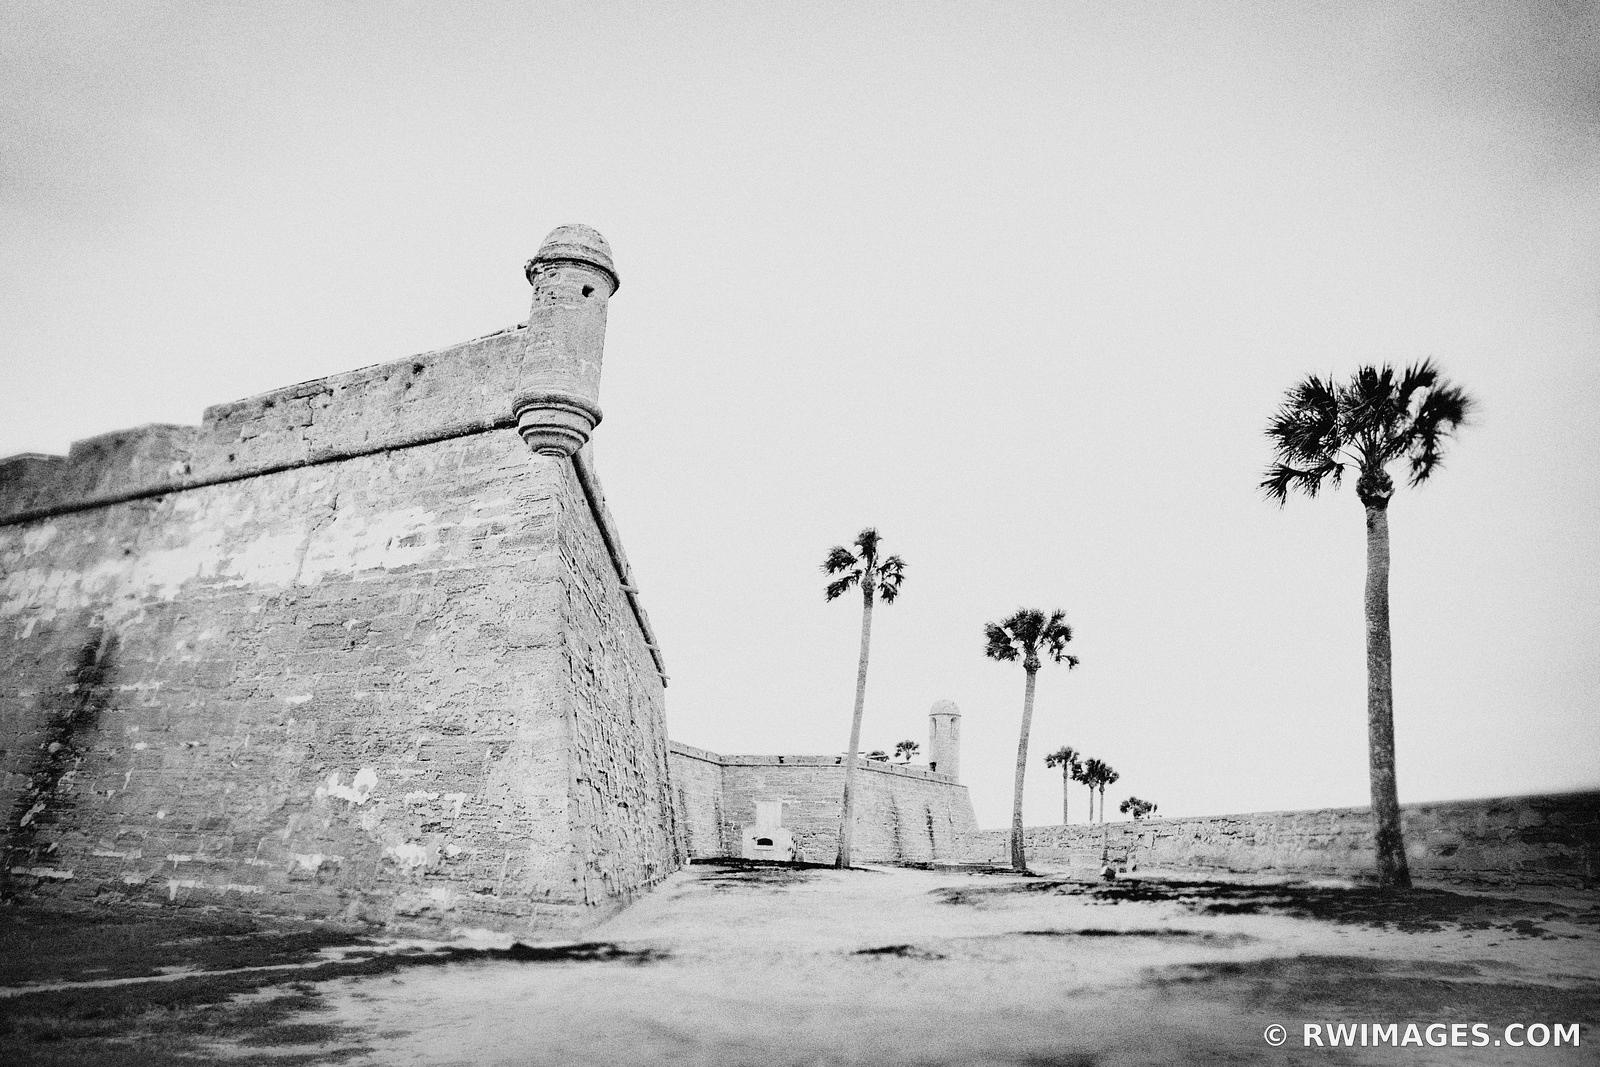 ST. AUGUSTINE FLORIDA CASTILLO DE SAN MARCOS BLACK AND WHITE